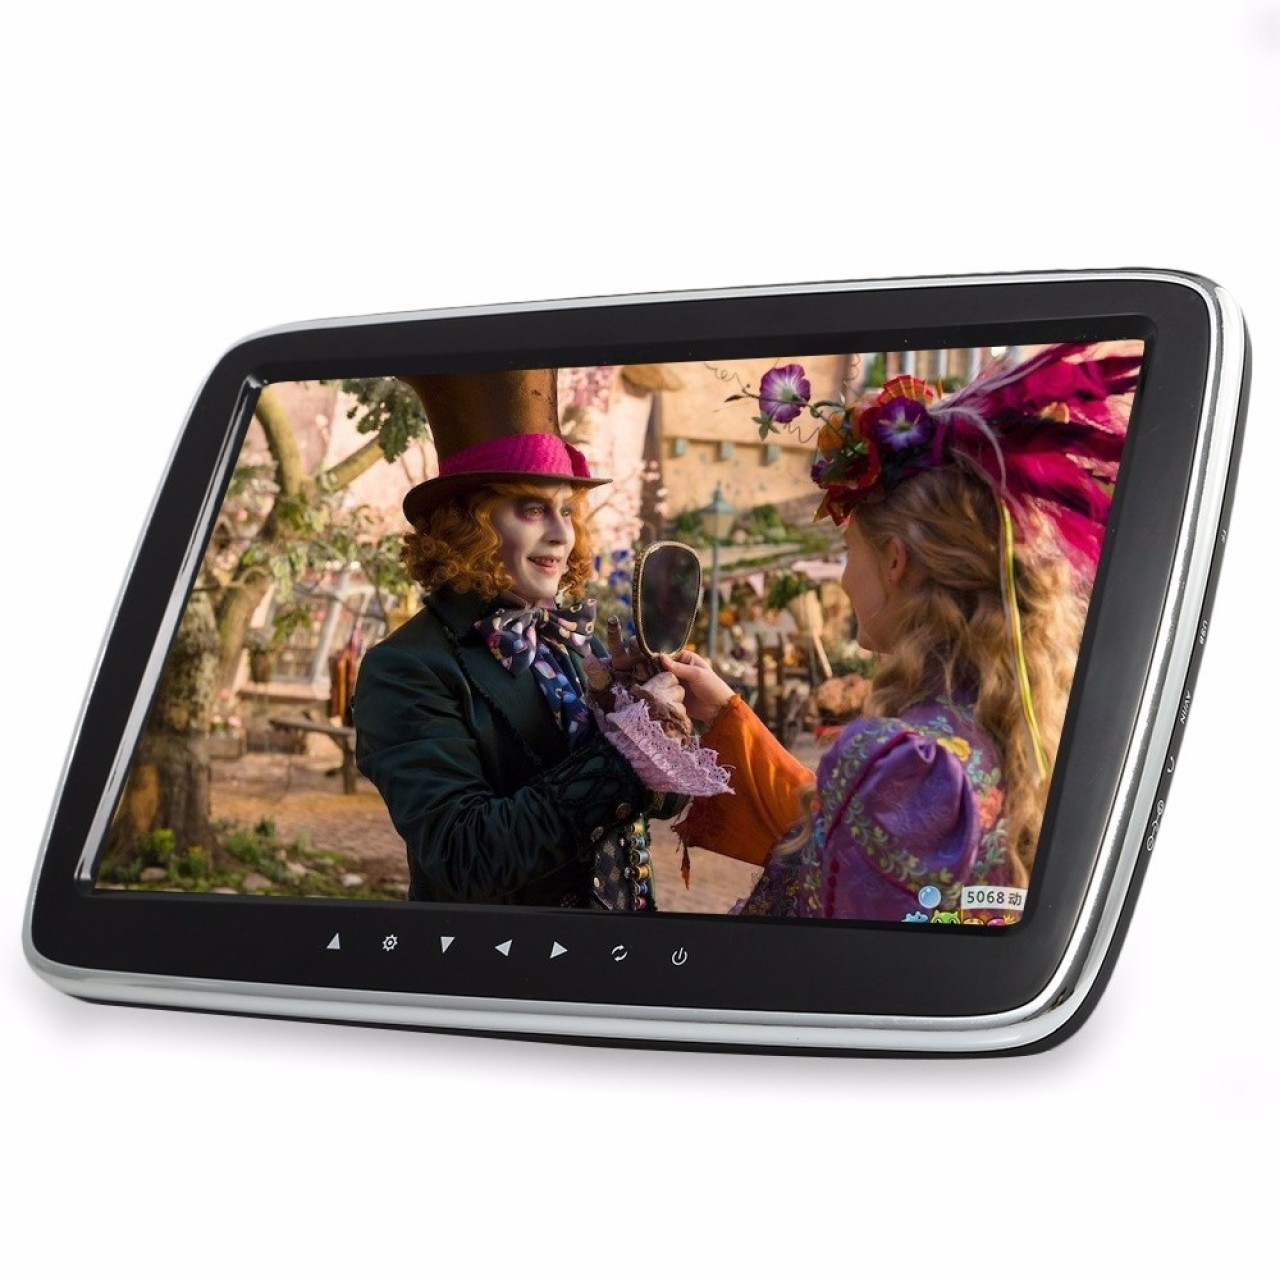 MONITOR CU PRINDERE PE TETIERA Mitsubishi ECRAN 10'' TRAVELMATE 10 USB / SD MP5 PLAYER REZOLUTIE HD